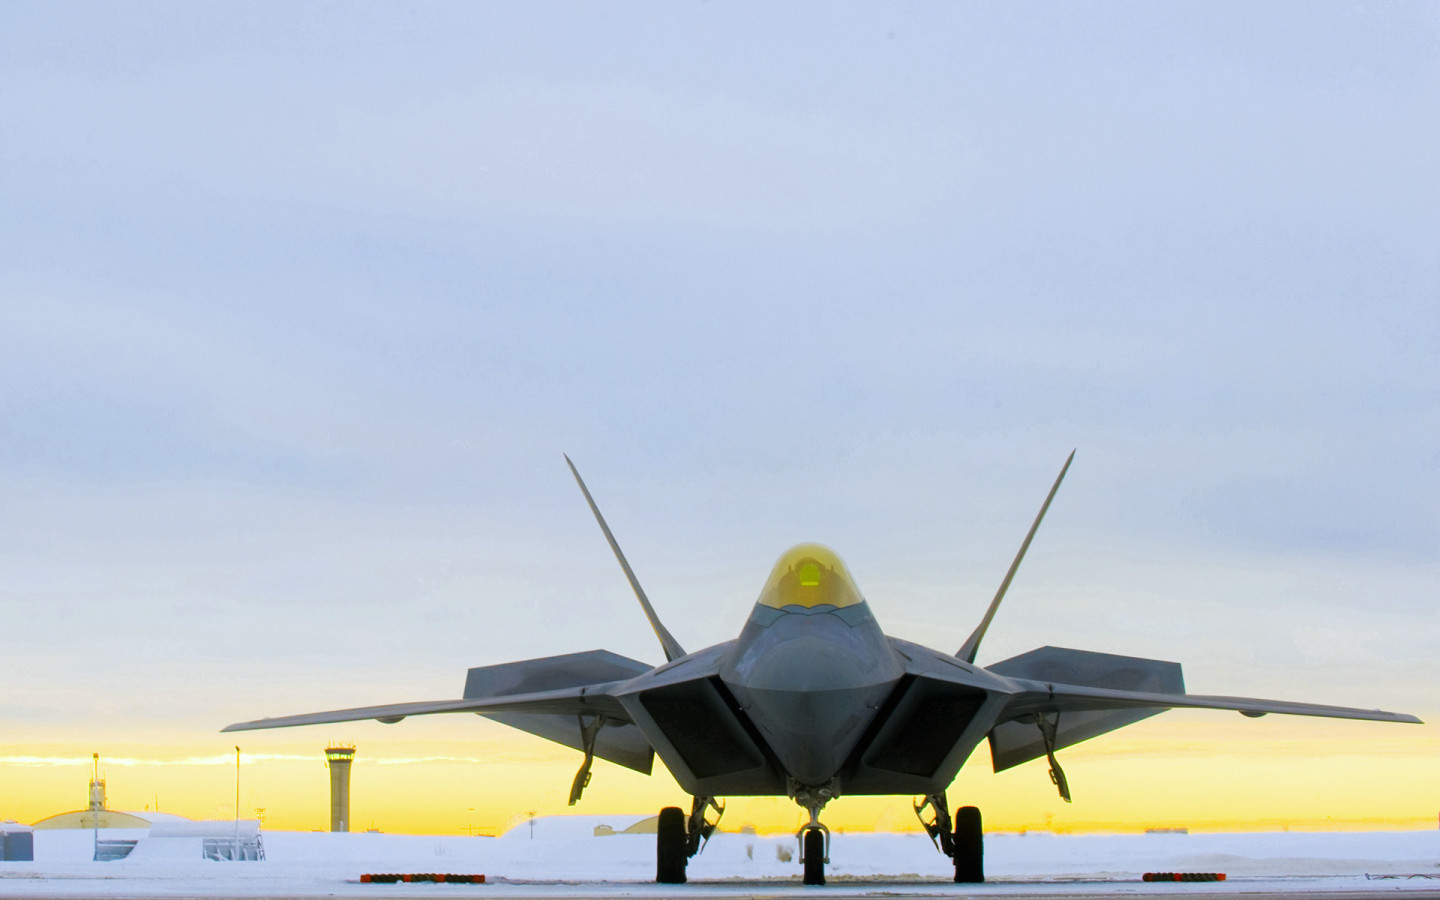 F22 Wallpaper 11224 Hd Wallpapers in Aircraft   Imagescicom 1440x900